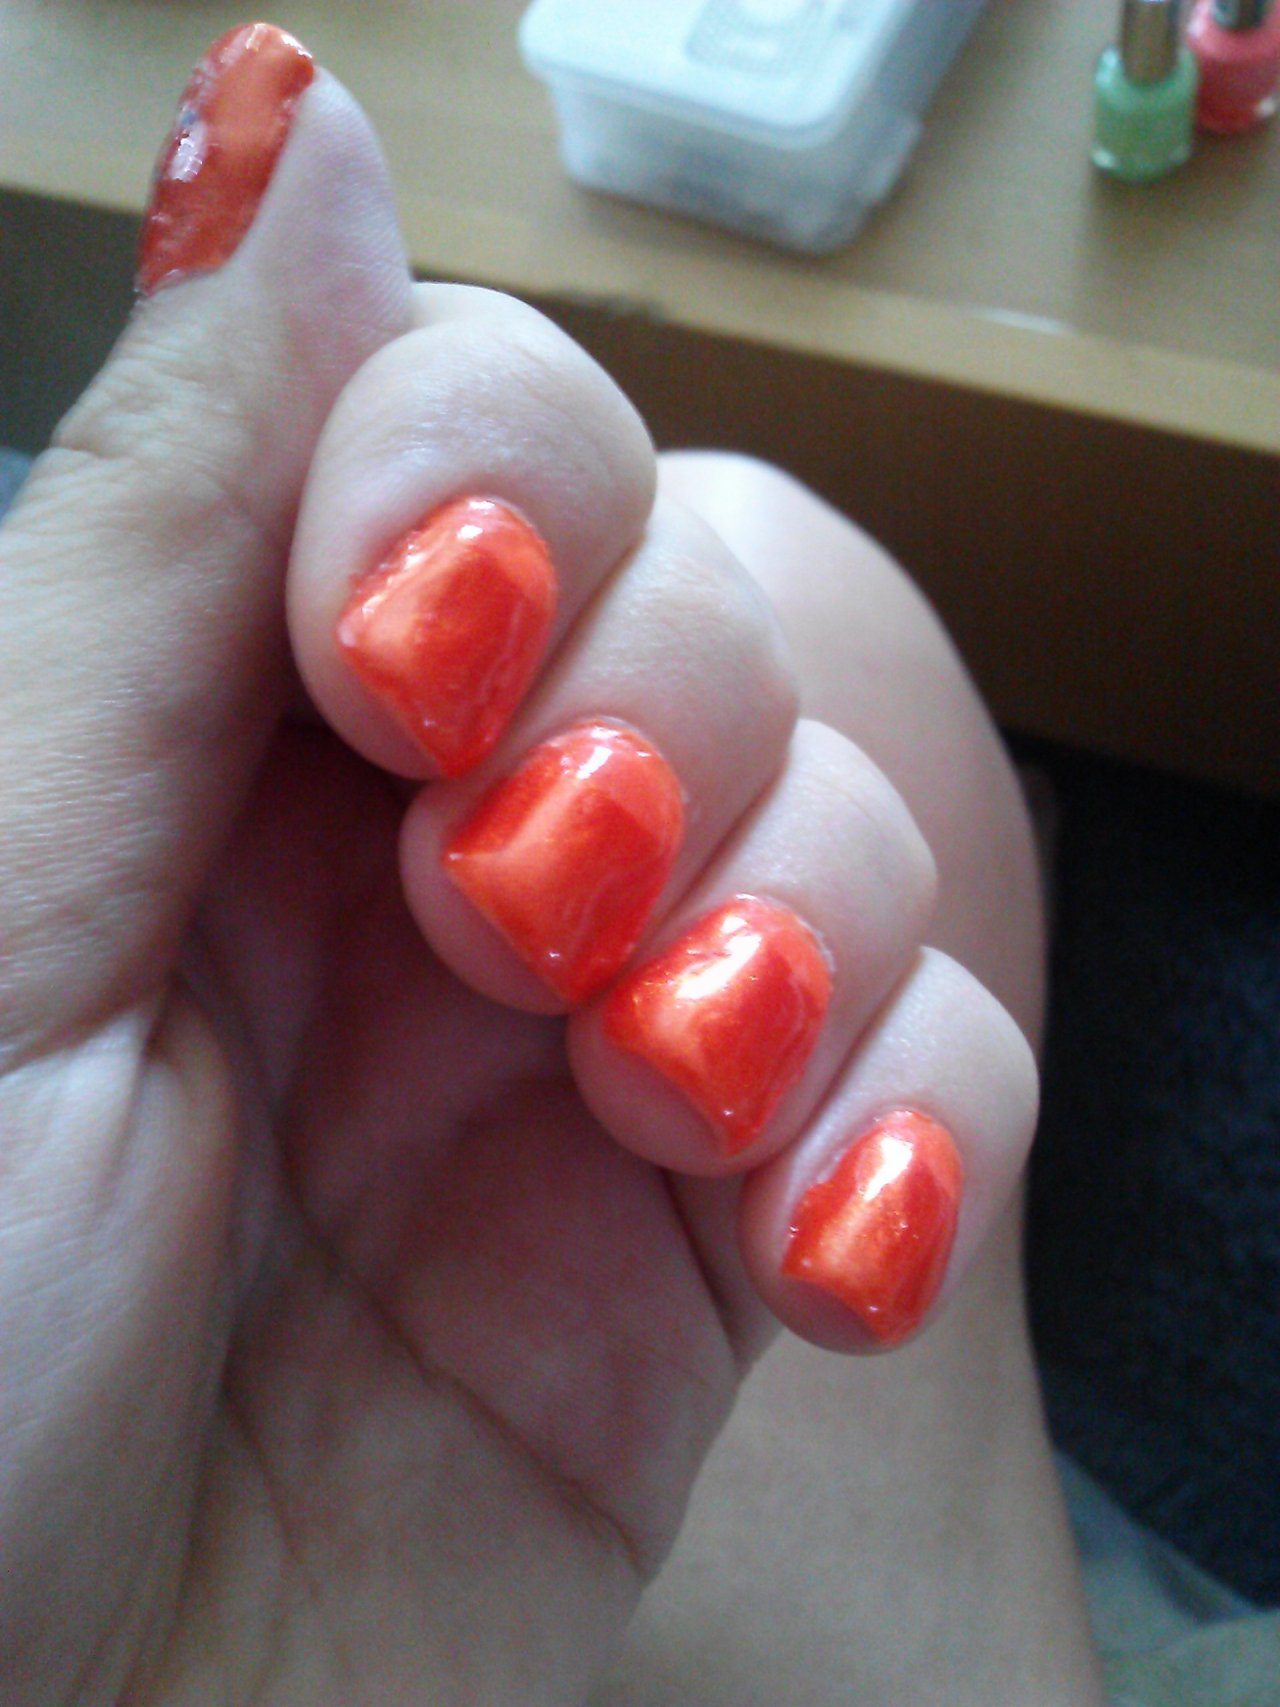 Orange half moon mani. I am just not into it.